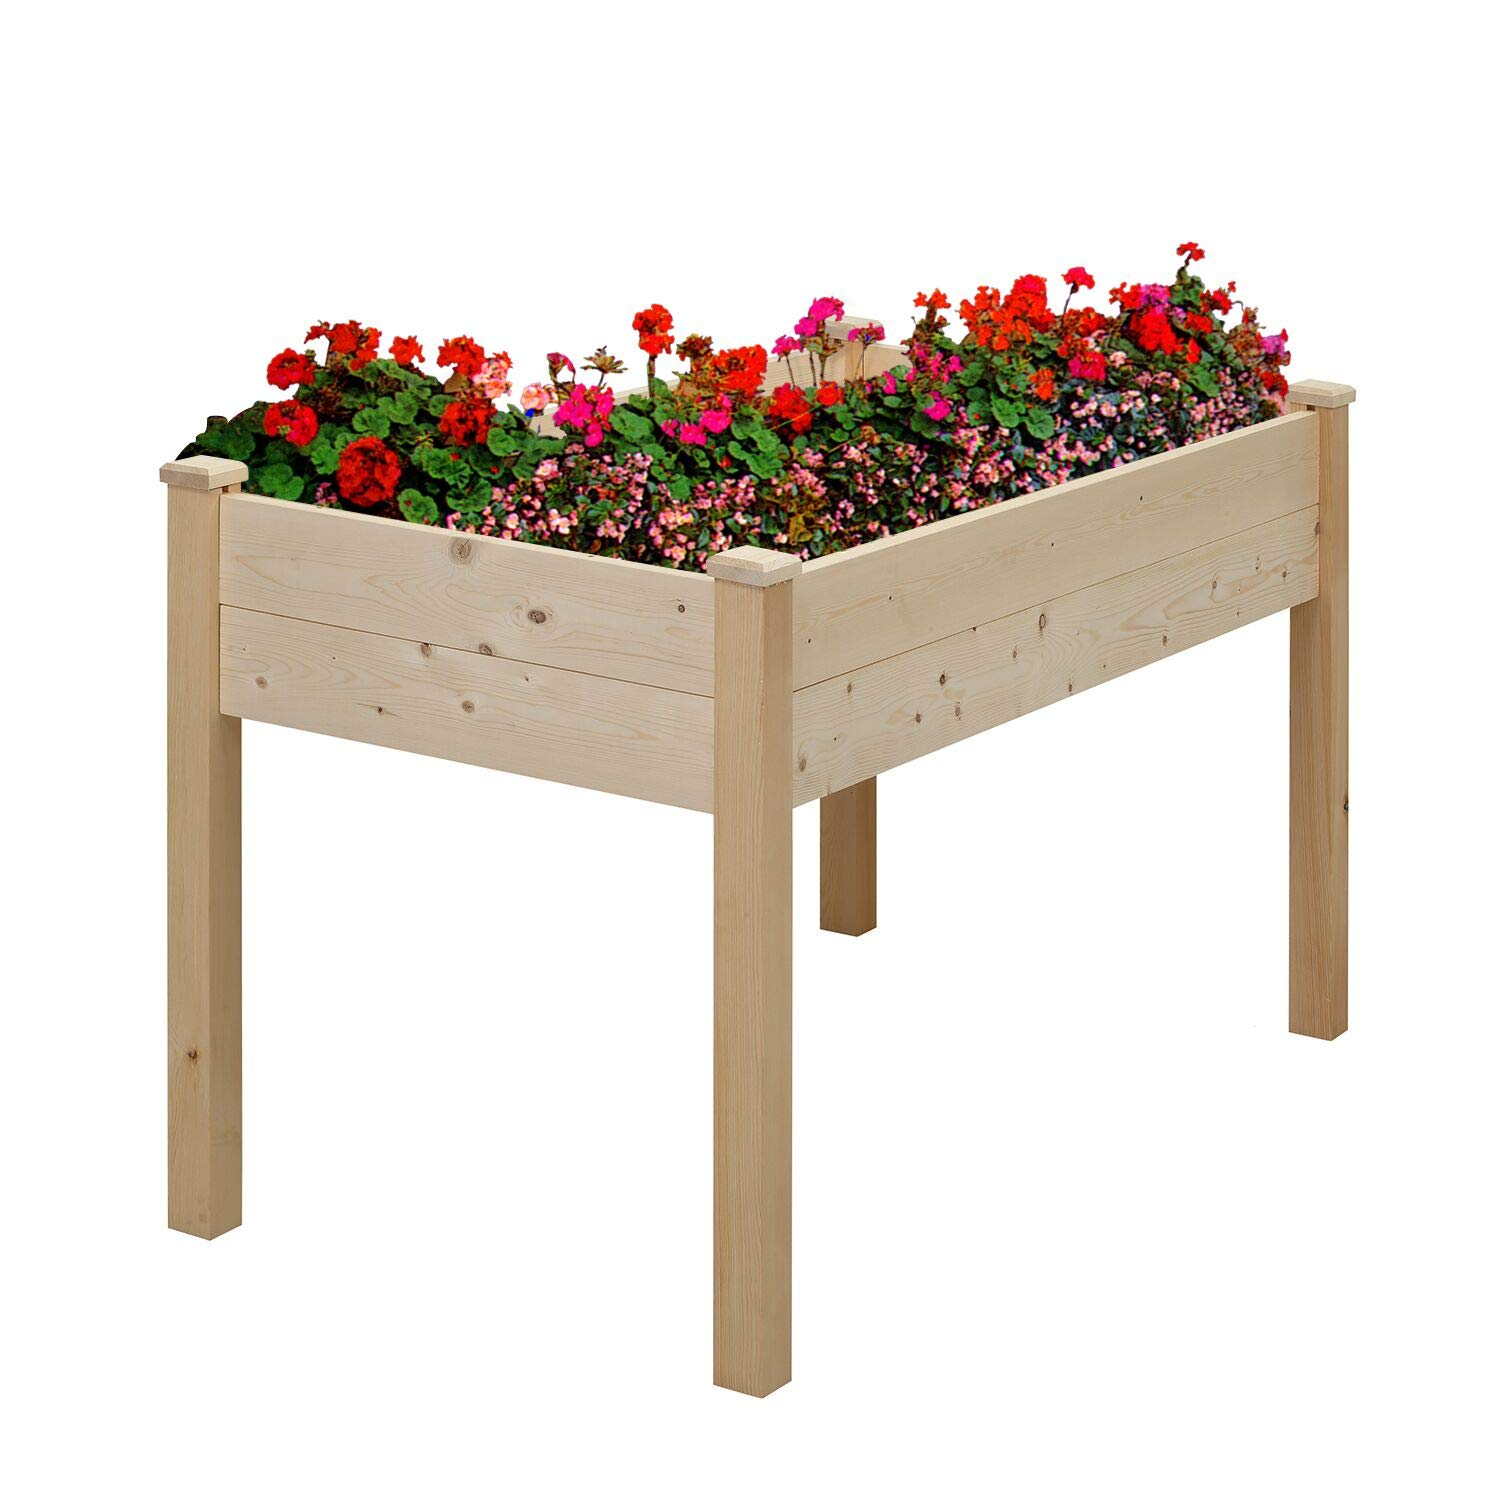 Raised Garden Bed Planter with Legs, Wood, 48'' x 24'' x 30'', Tool-Free